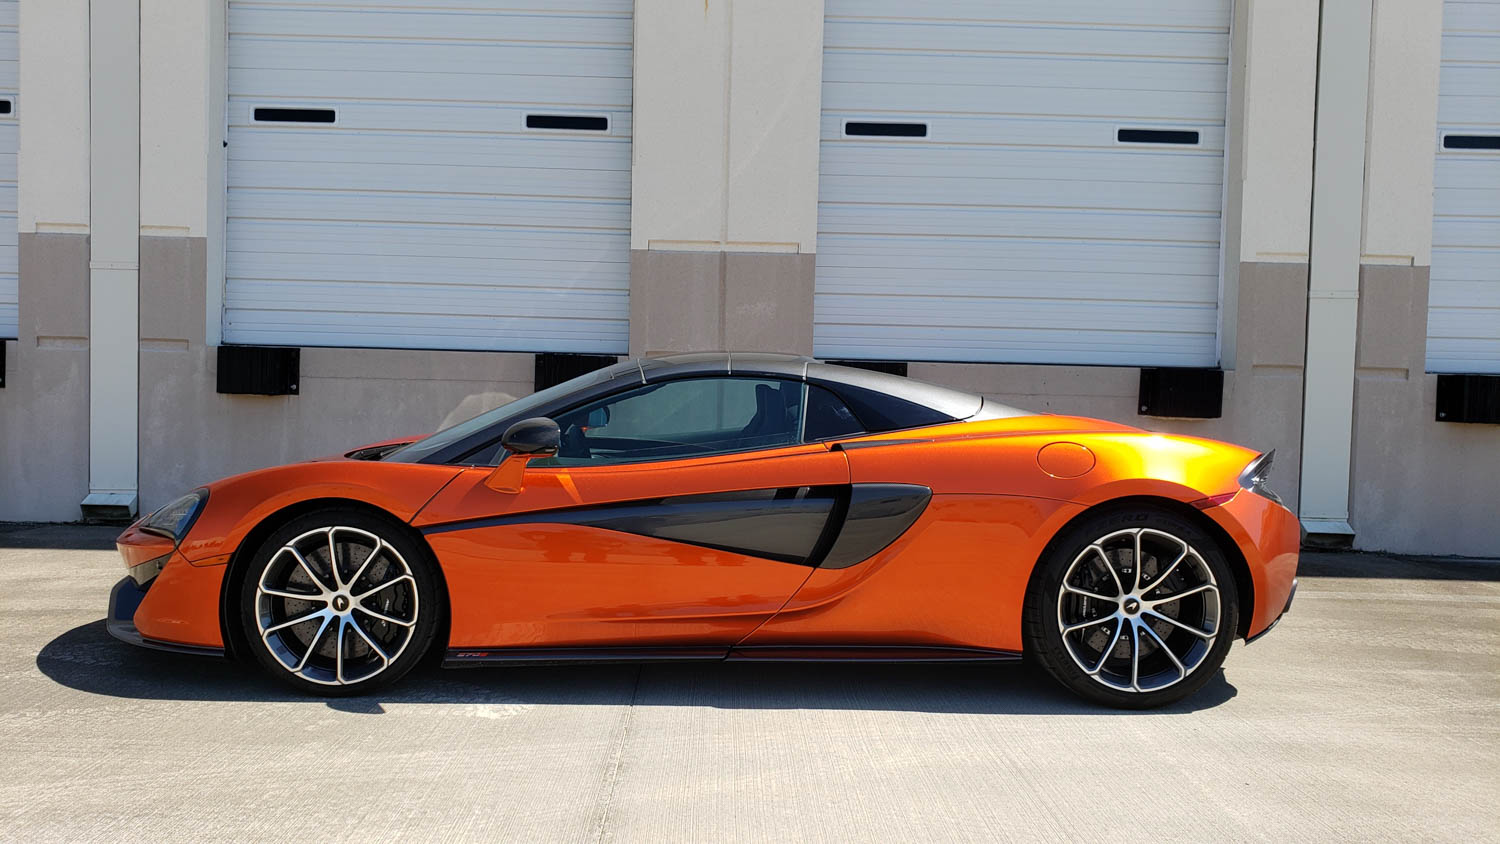 McLaren 570S Spider side profile